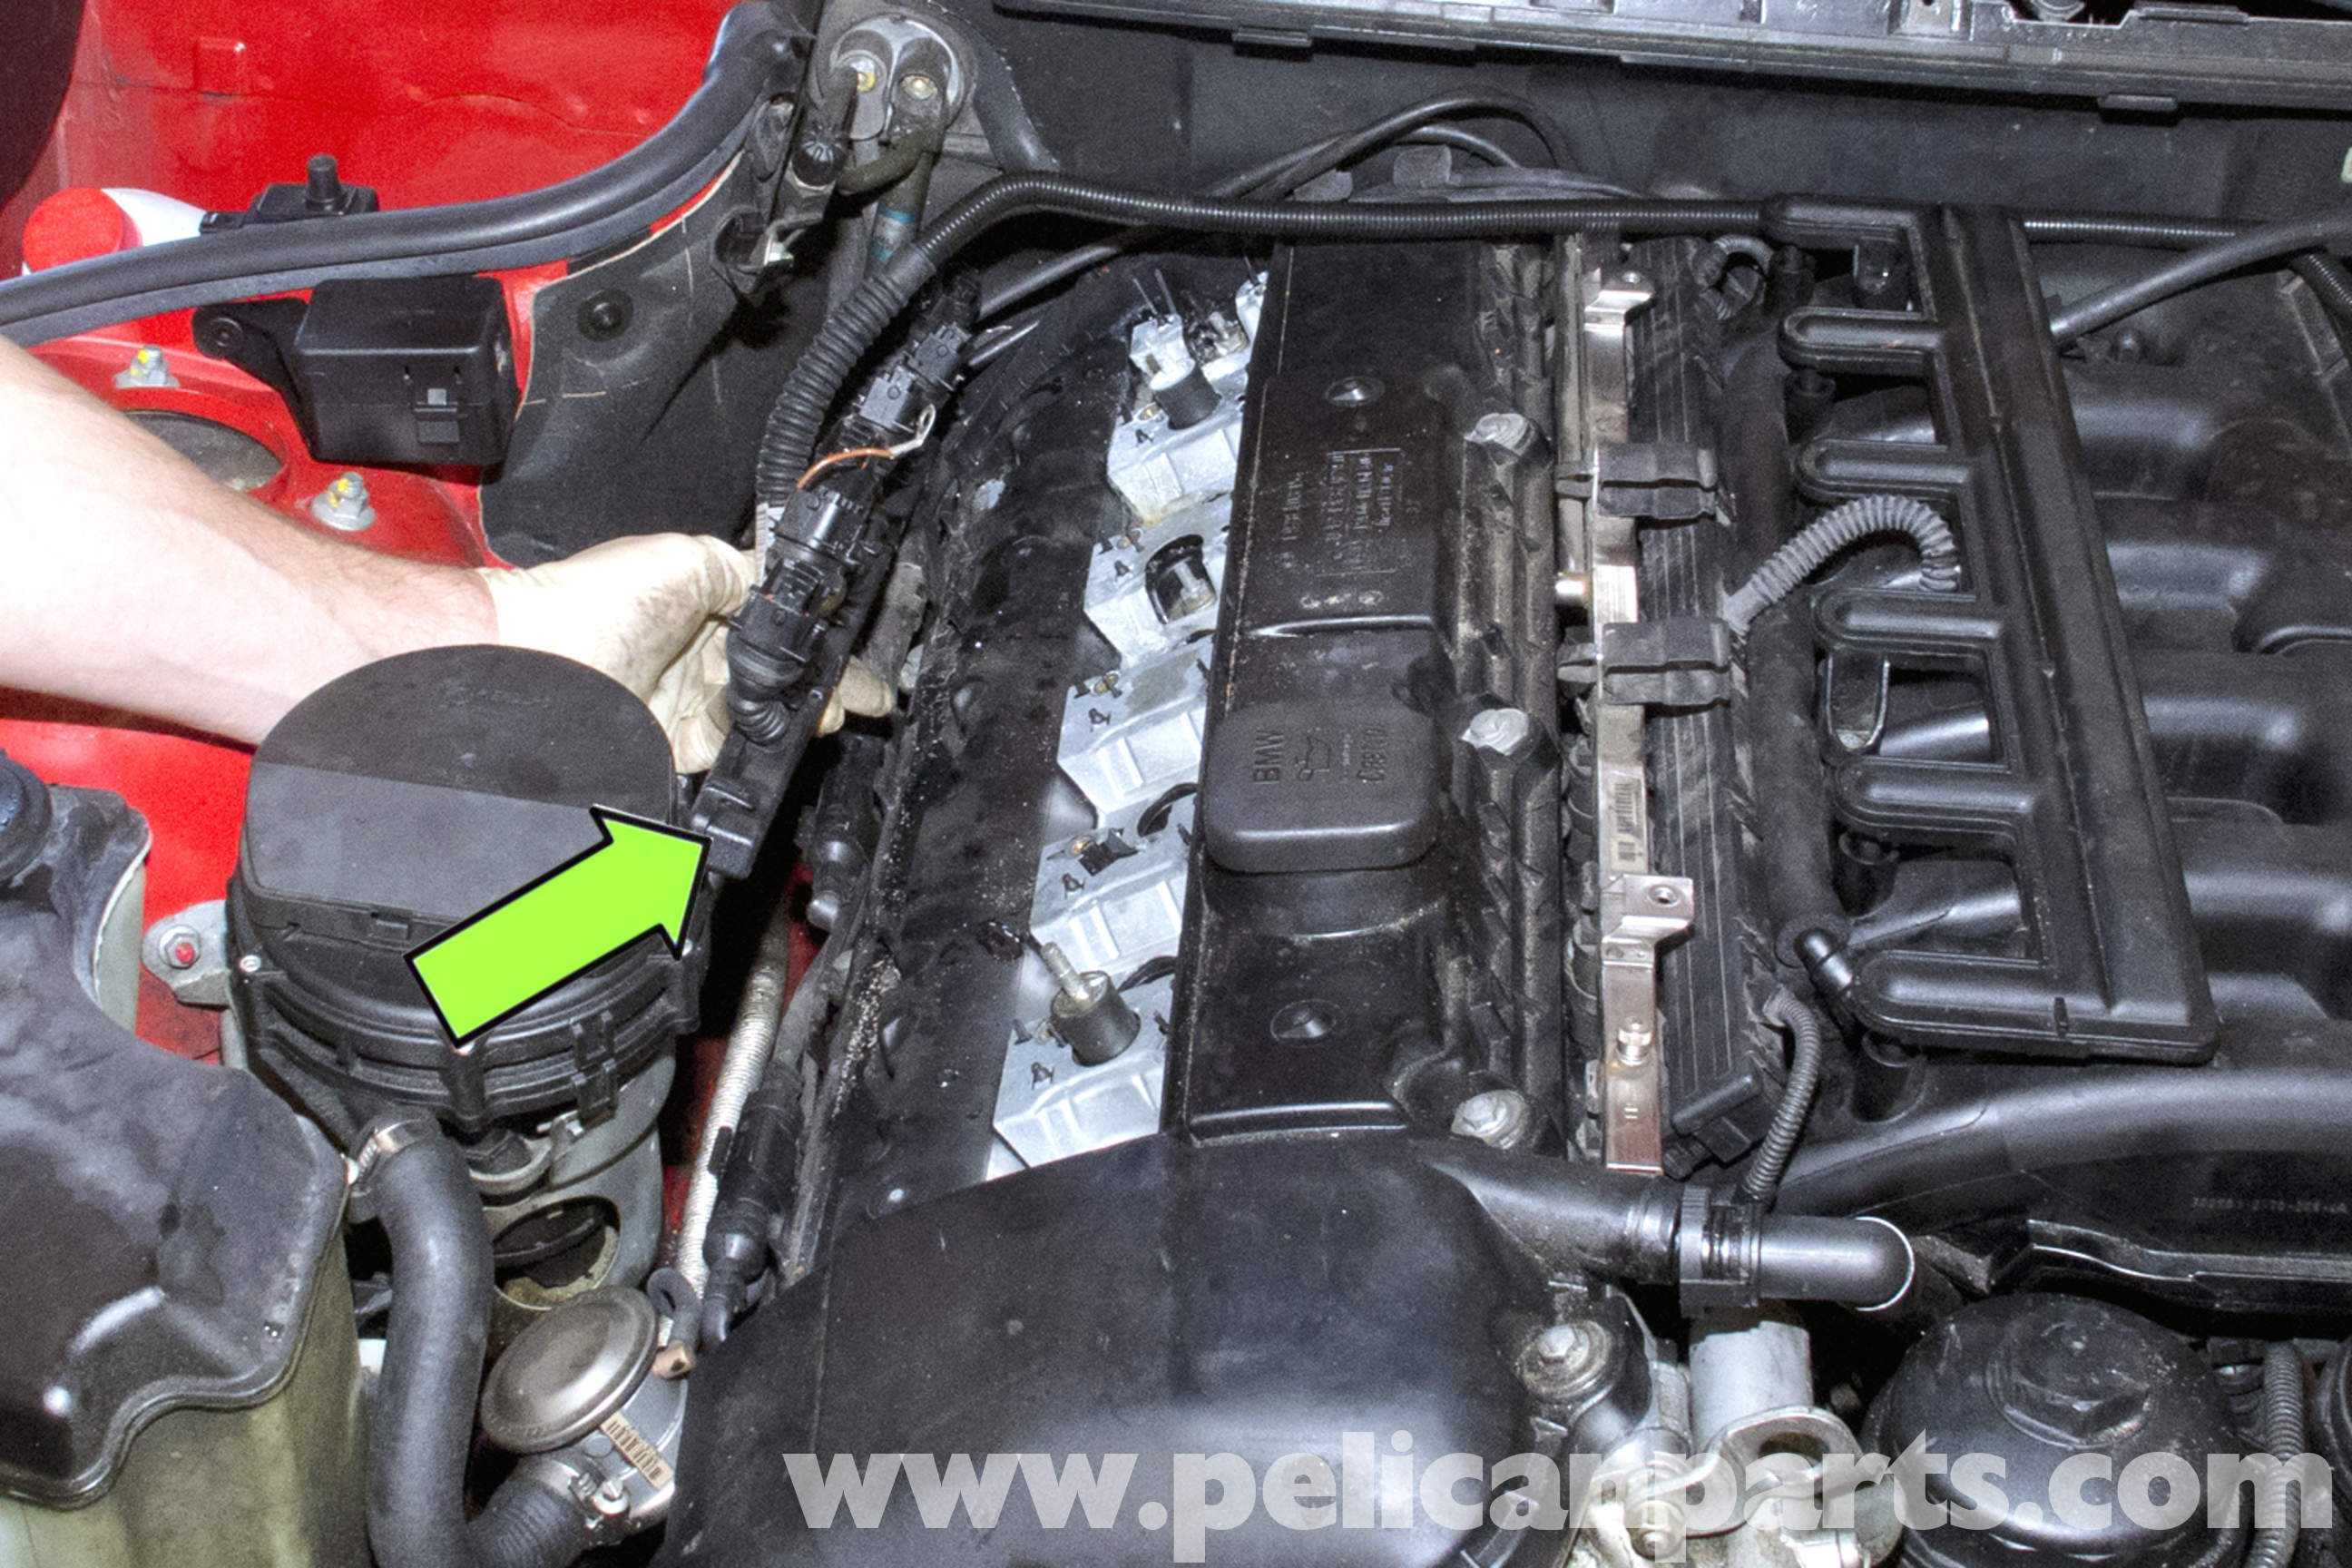 pic02 bmw e39 5 series valve cover gasket removal 1997 2003 525i, 528i Dinan E39 M5 at virtualis.co